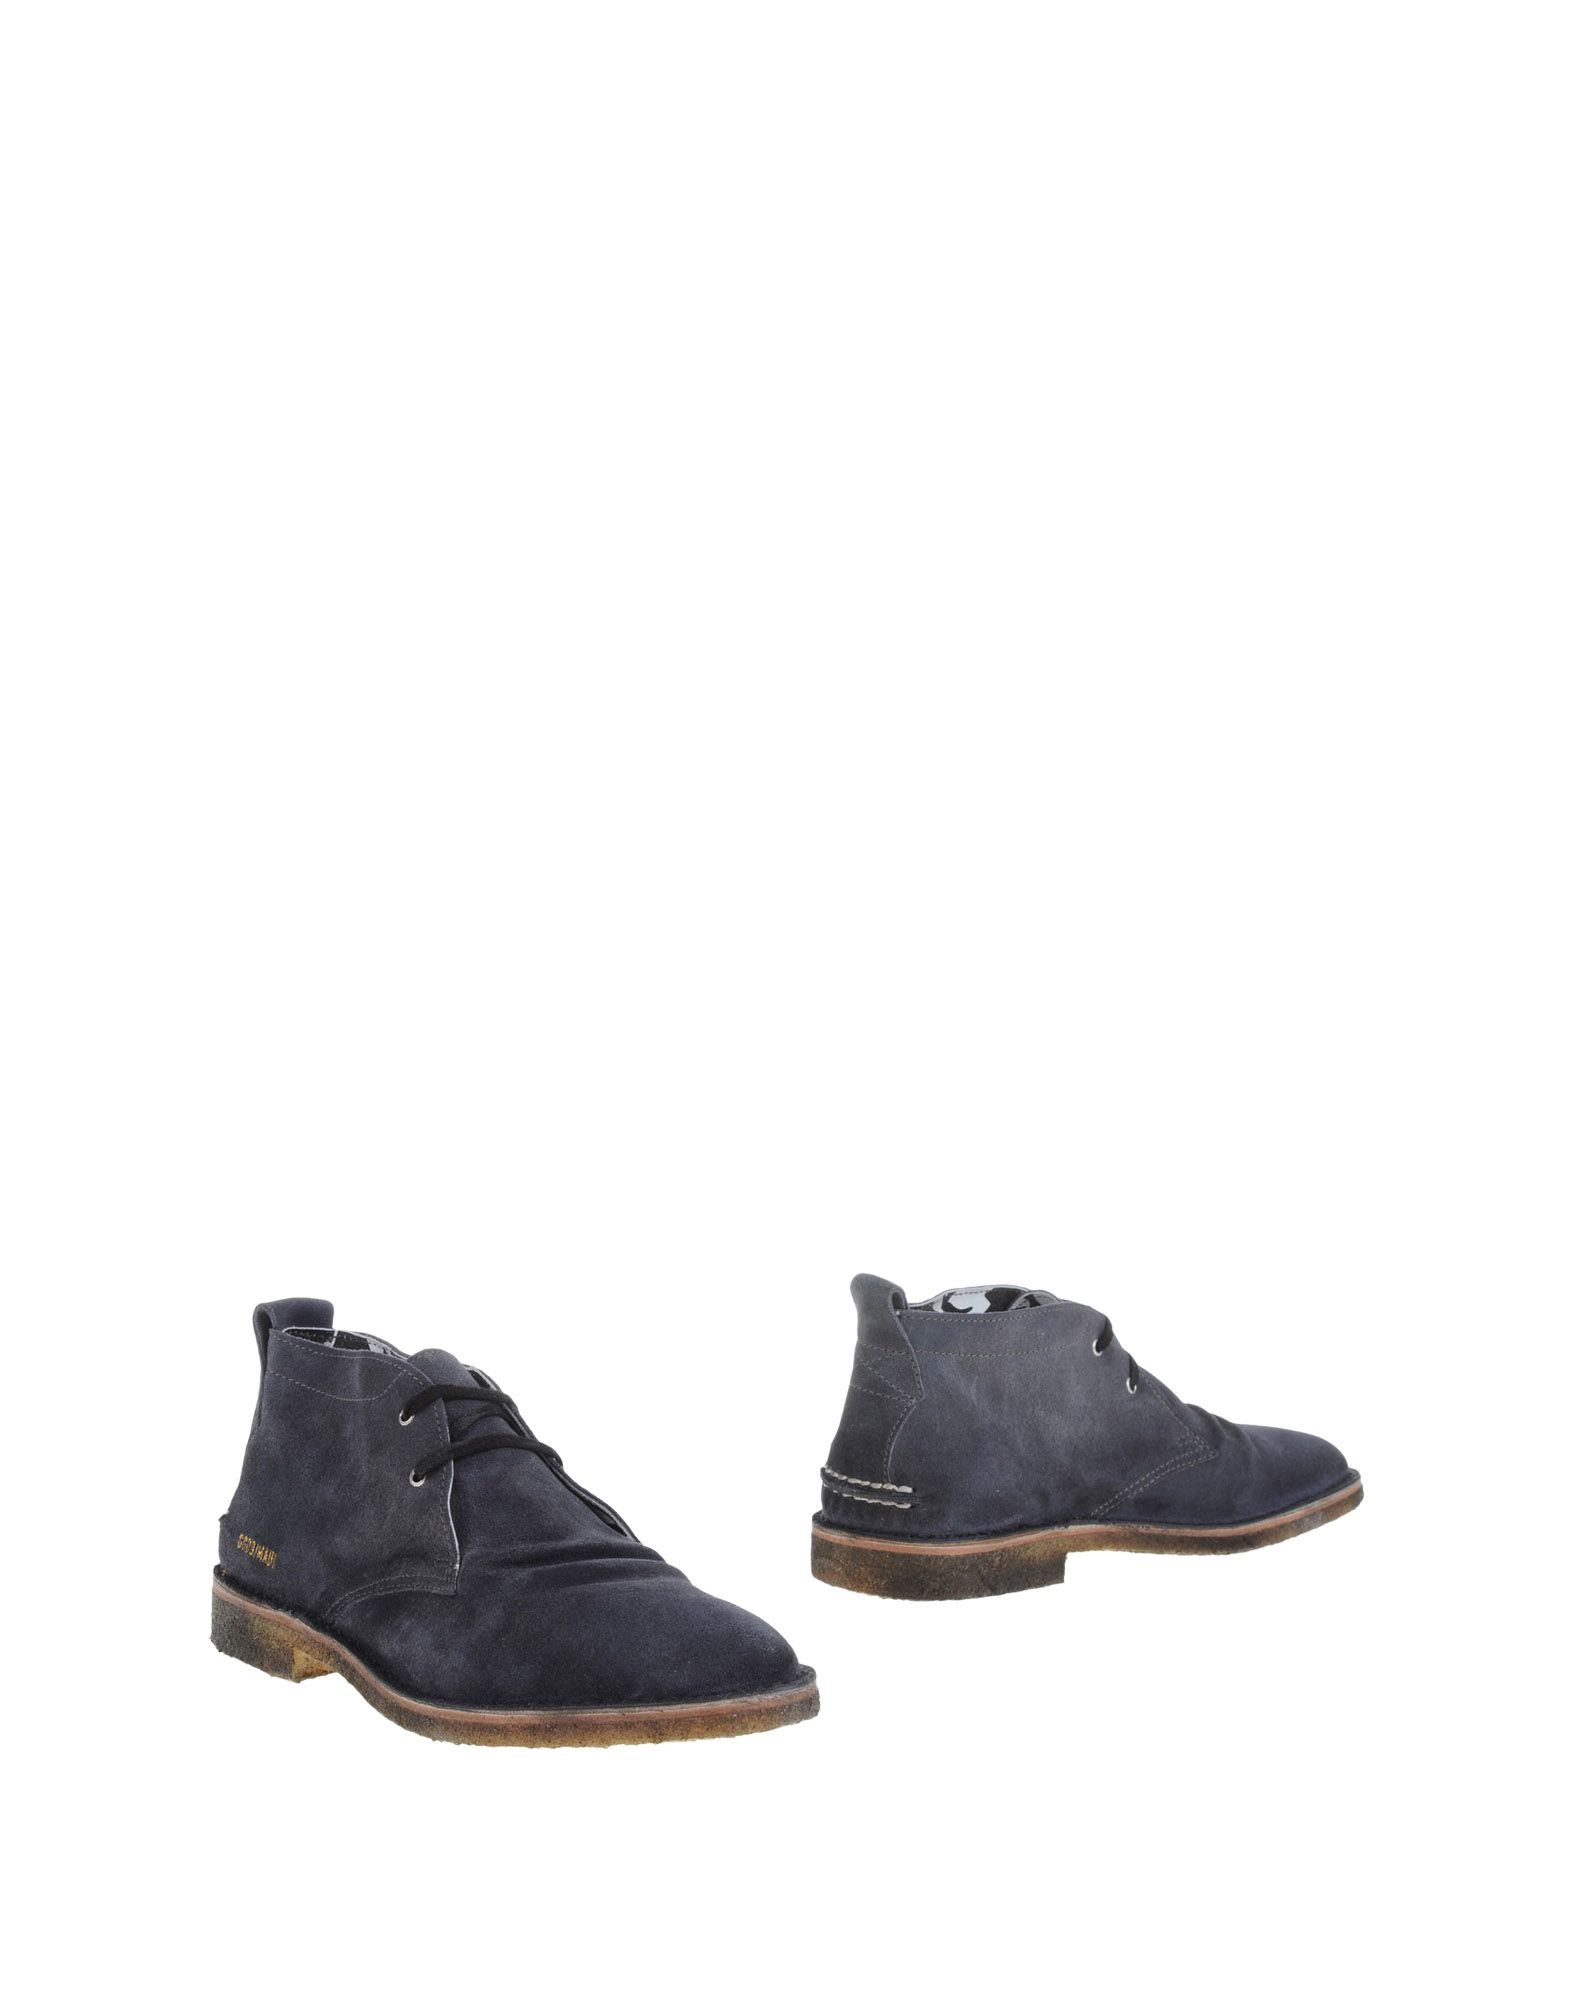 golden goose deluxe brand ankle boots in gray for lyst